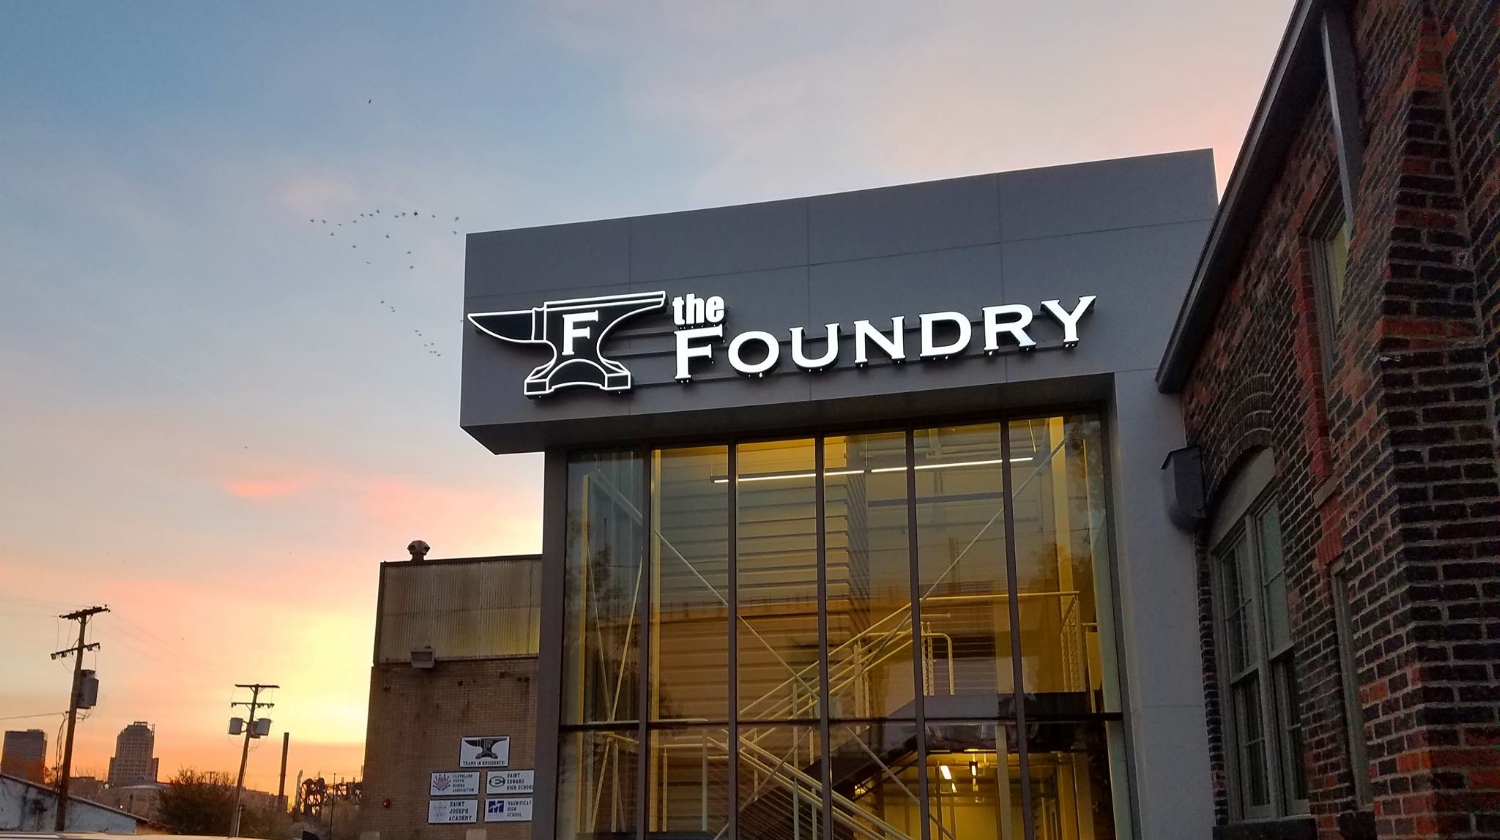 The Foundry High Performance Rowing Training Center - CLEVELAND, OH